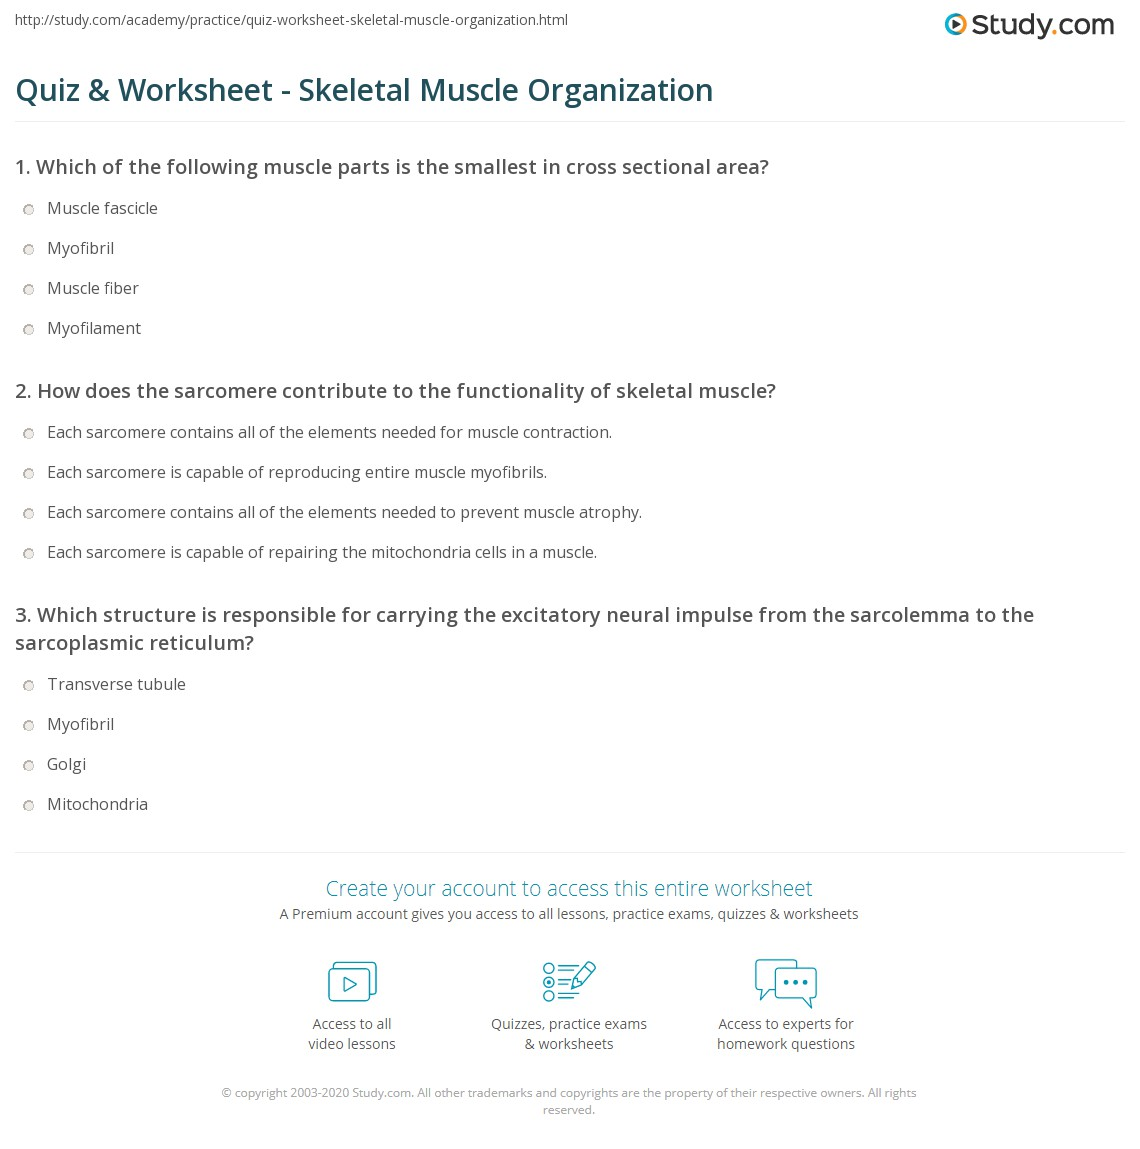 Quiz & Worksheet - Skeletal Muscle Organization | Study.com